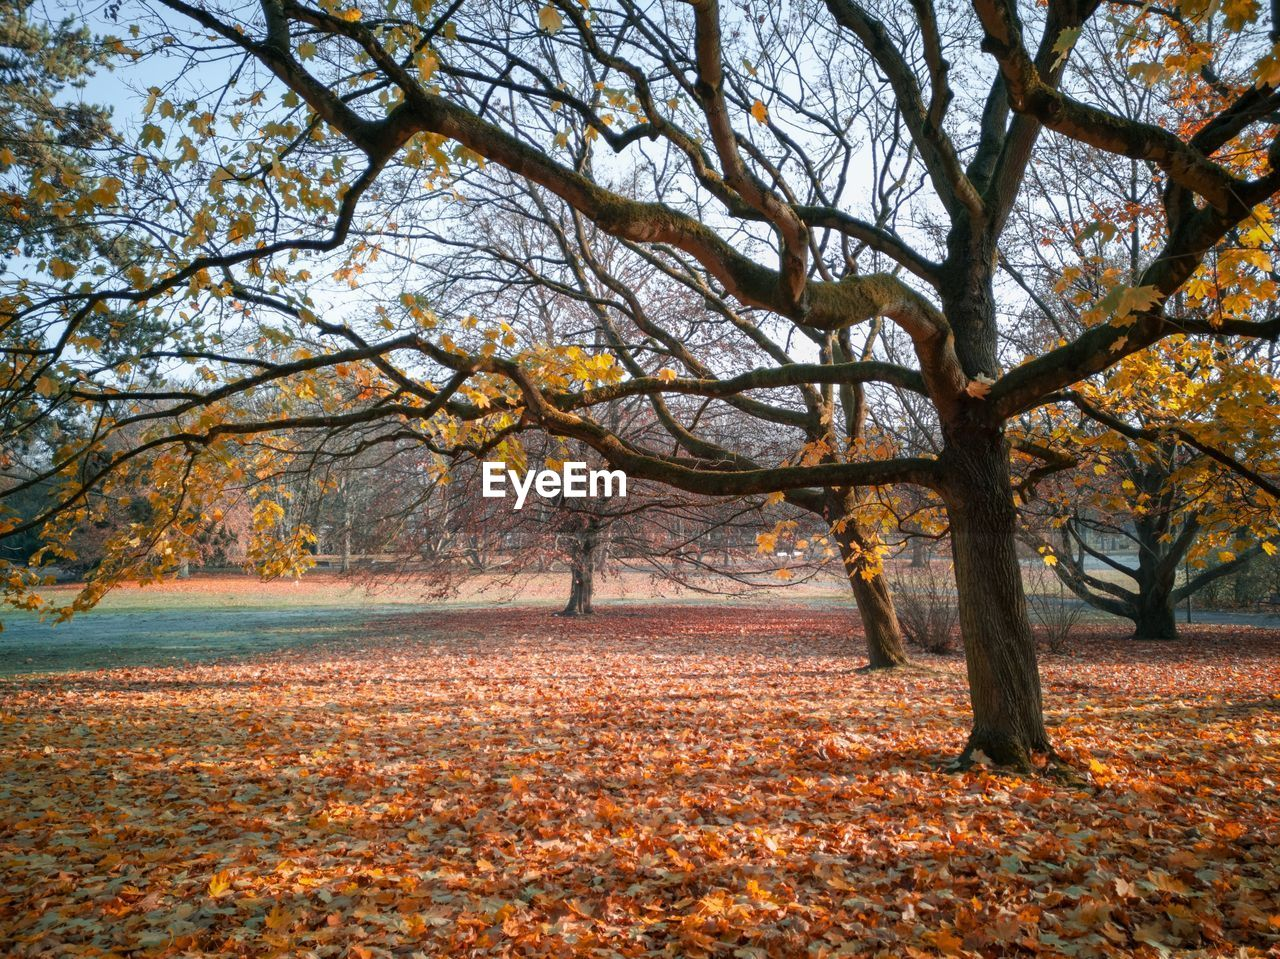 autumn, tree, change, leaf, plant part, plant, nature, land, tranquility, no people, day, scenics - nature, branch, landscape, beauty in nature, tranquil scene, outdoors, orange color, field, forest, autumn collection, fall, leaves